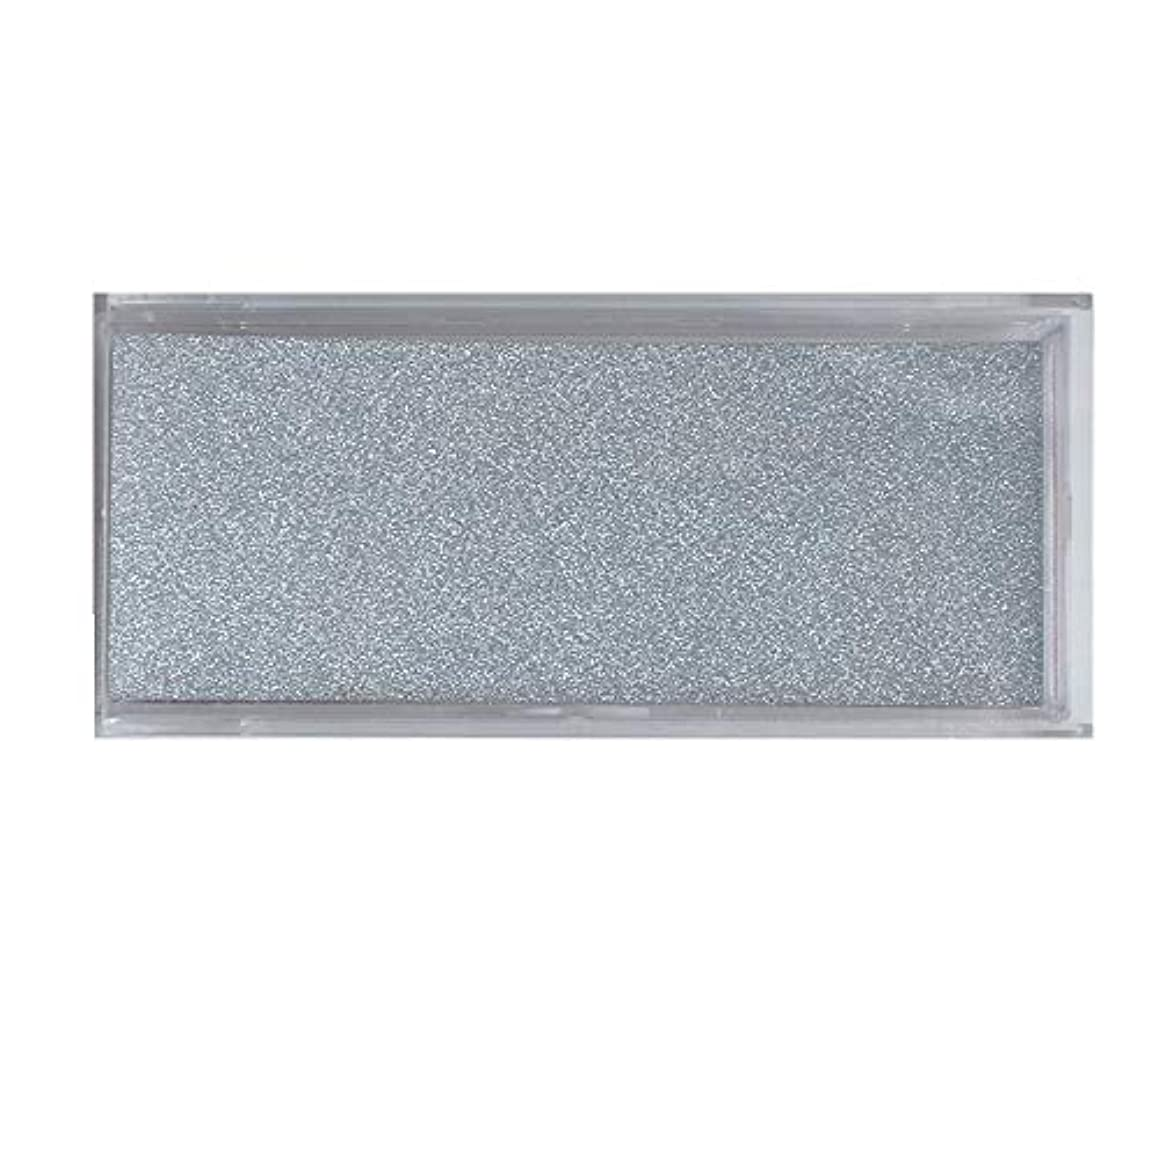 Set of 10 Empty Lash Box Glitter Silver Paper Plastic Eyelash Packing Box (Silver Card)